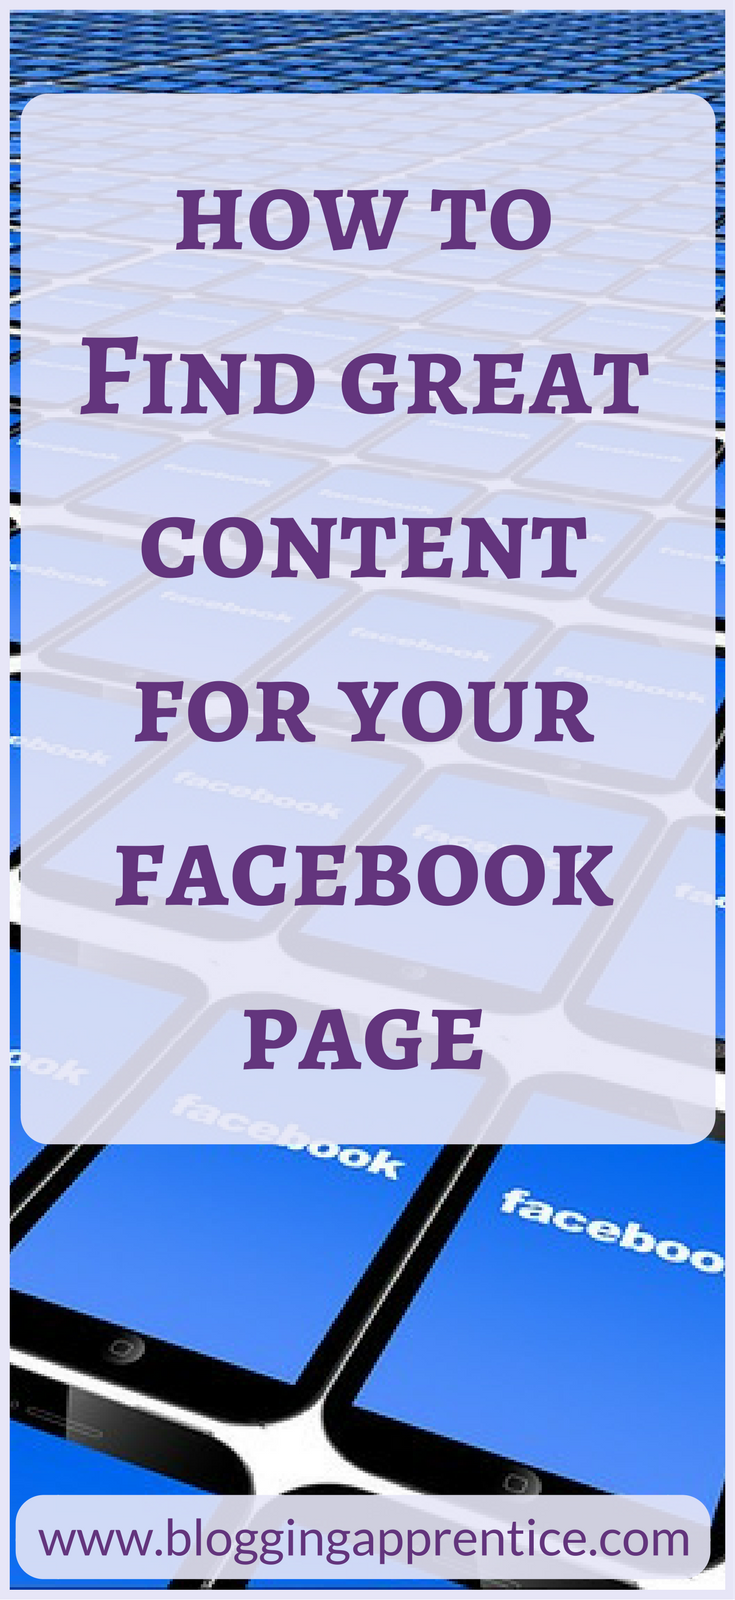 To build and grow your Facebook page, it's important to post great content... here are a few tips on what to post, and where to source it! On bloggingapprentice.com.